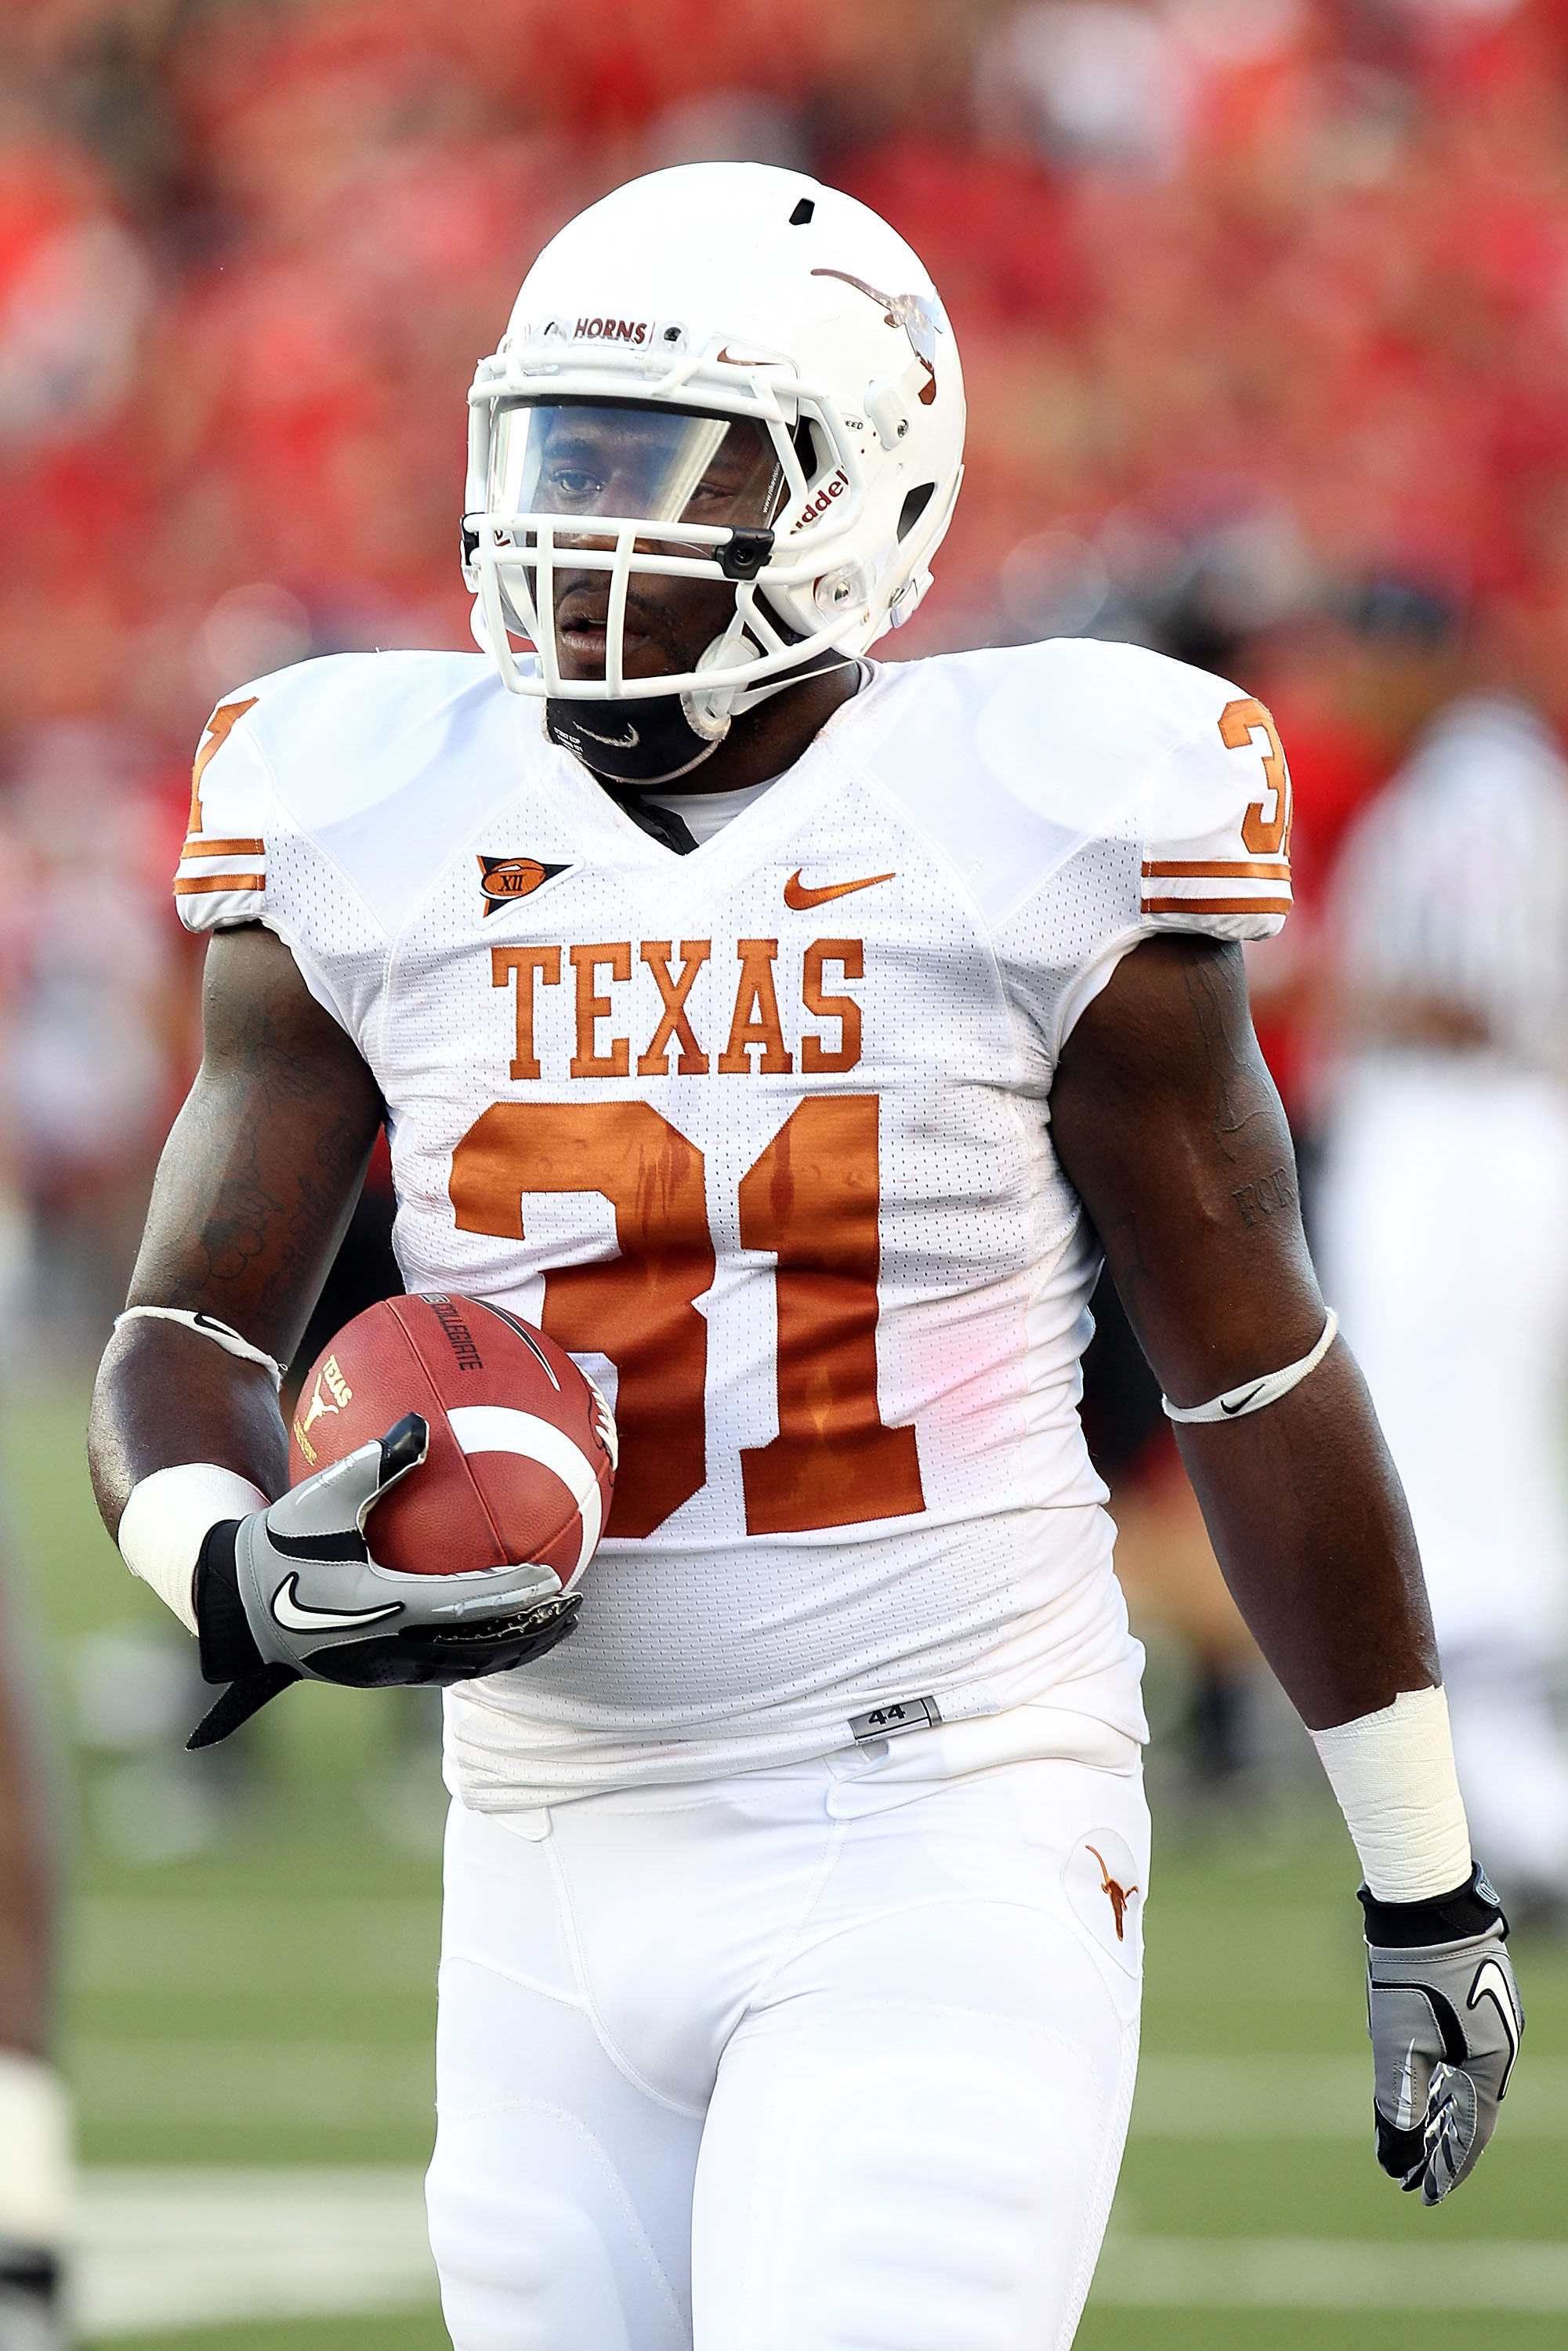 LUBBOCK, TX - SEPTEMBER 18:  Running back Cody Johnson #31 of the Texas Longhorns at Jones AT&T Stadium on September 18, 2010 in Lubbock, Texas.  (Photo by Ronald Martinez/Getty Images)